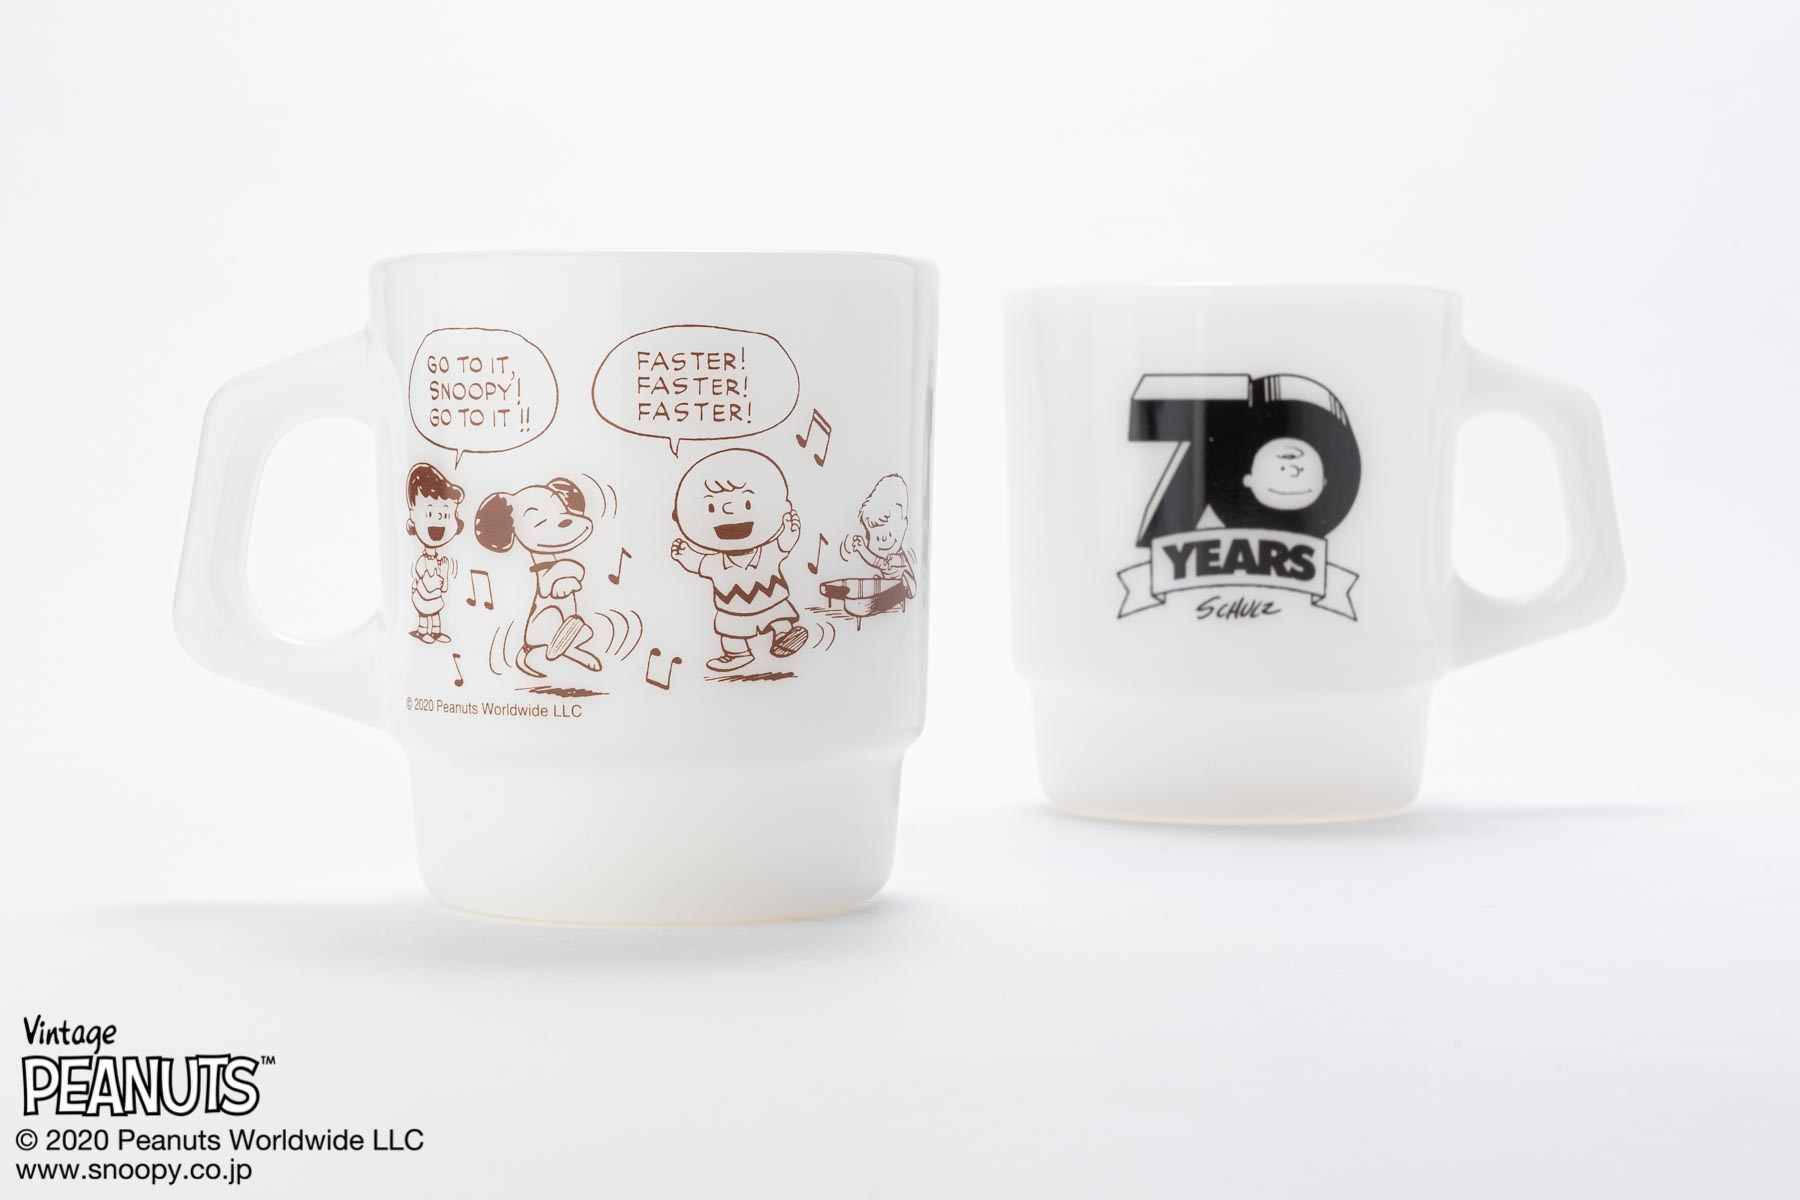 Fire-King スタッキングマグ Peanuts [70 YEARS]